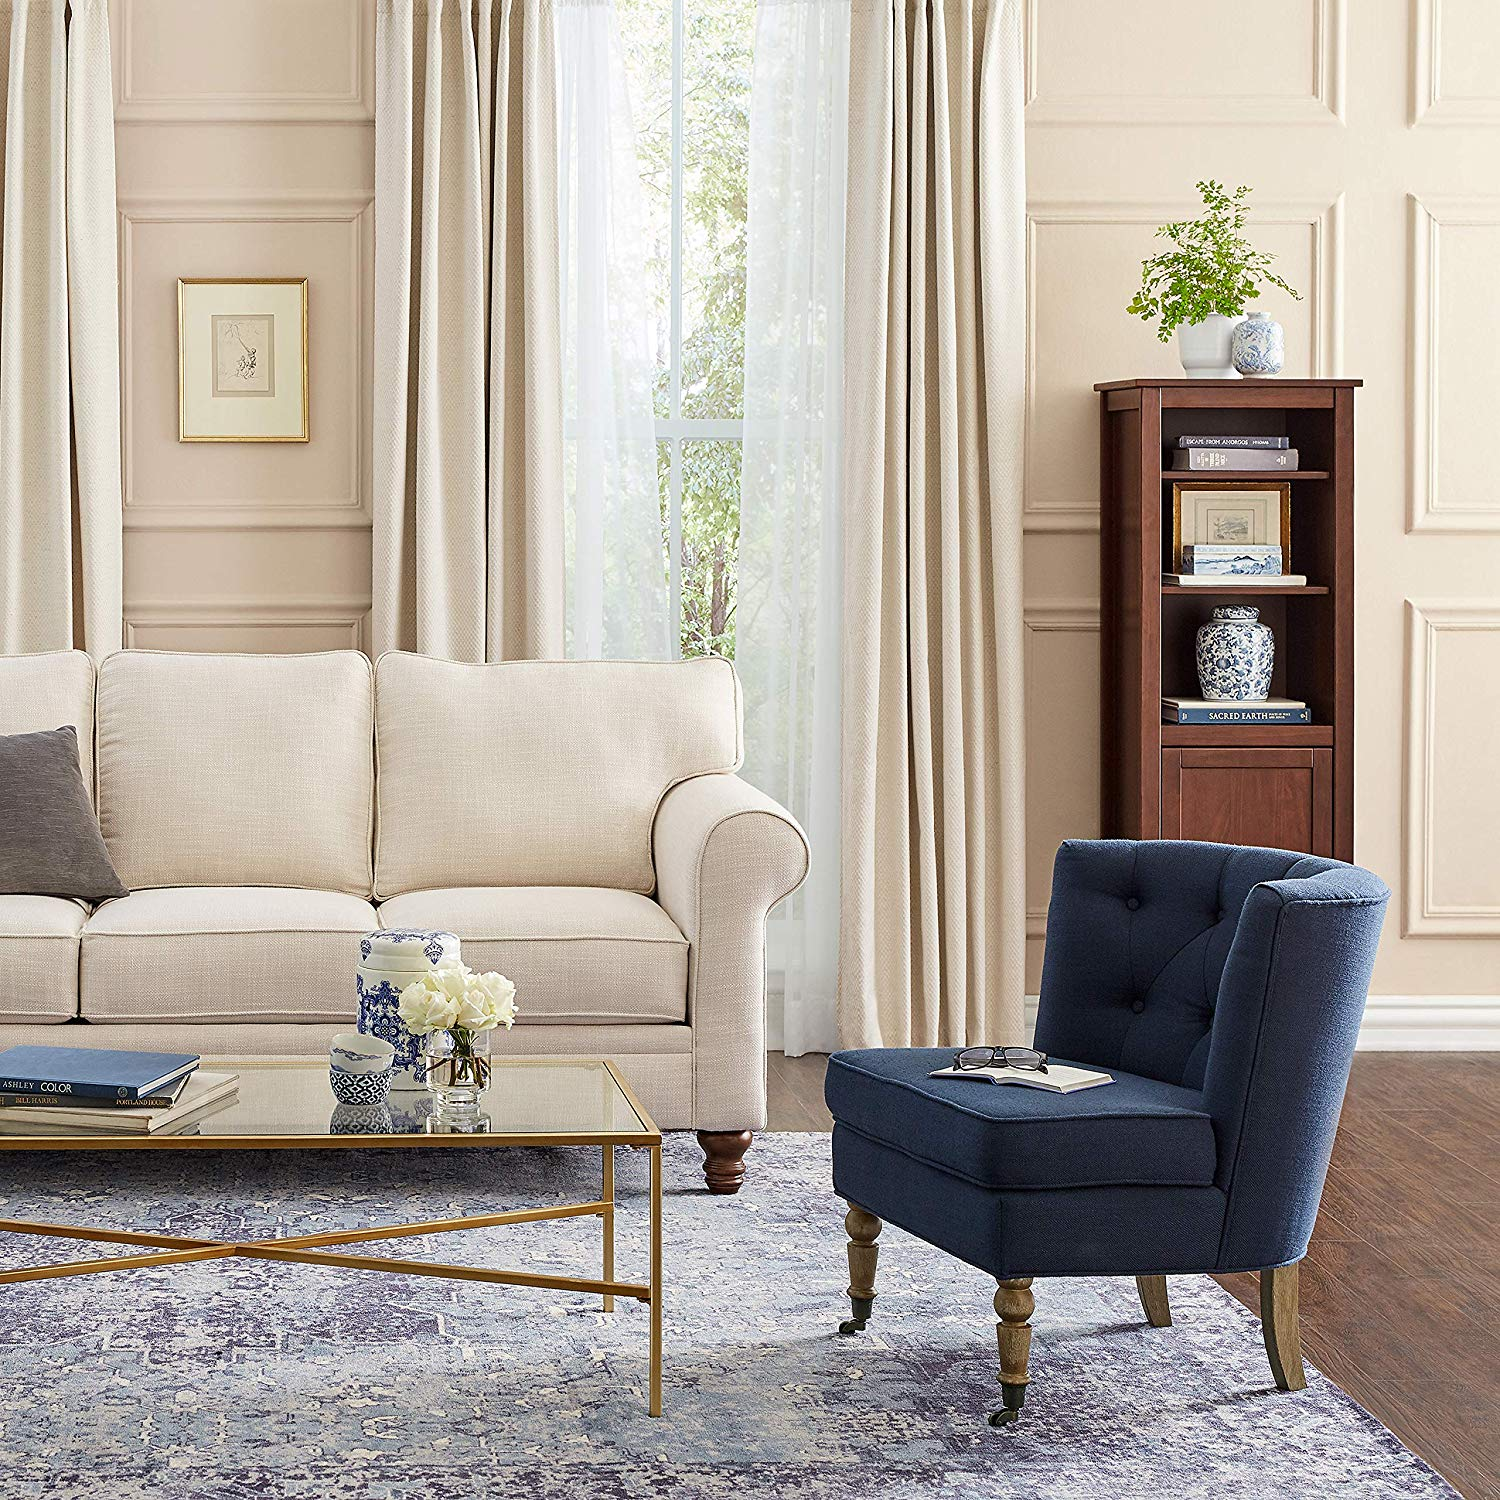 6 Favorites From Amazonu0027s New Furniture Lineu2014All Under $200 | Real Simple